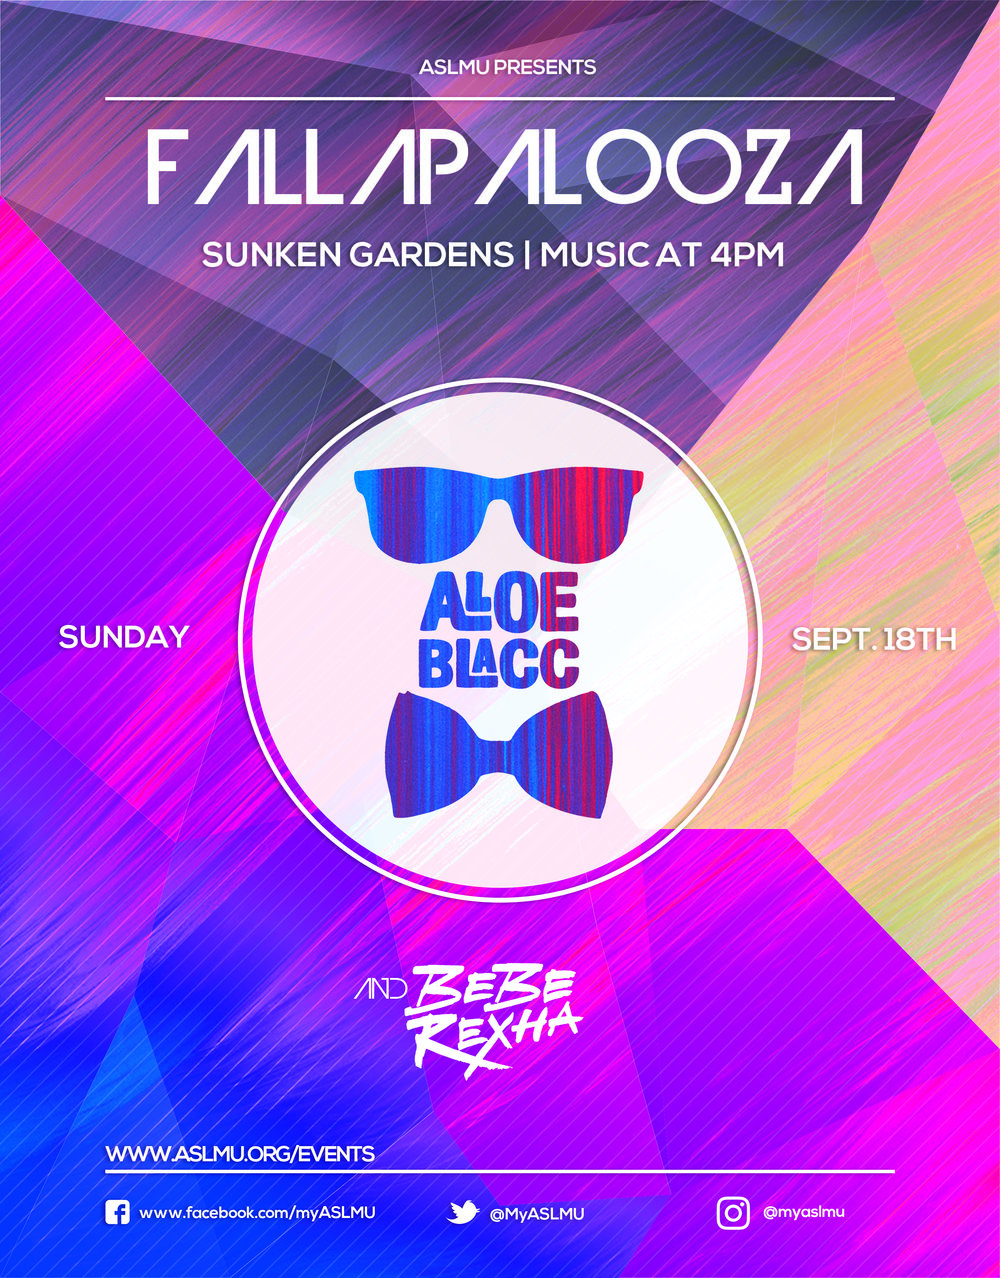 It's that time of the year again Lions!!! Come join ASLMU with an afternoon full of music and fun! LALLAPALOOZA is on Sunday, September 18 starting at 4 pm. This is a FREE concert hosted by ASLMU featuring artists Aloe Blacc and Bebe Rexha! There will be food trucks, vendors, a beer garden, activities, and more! Can't wait to see you all there!!!